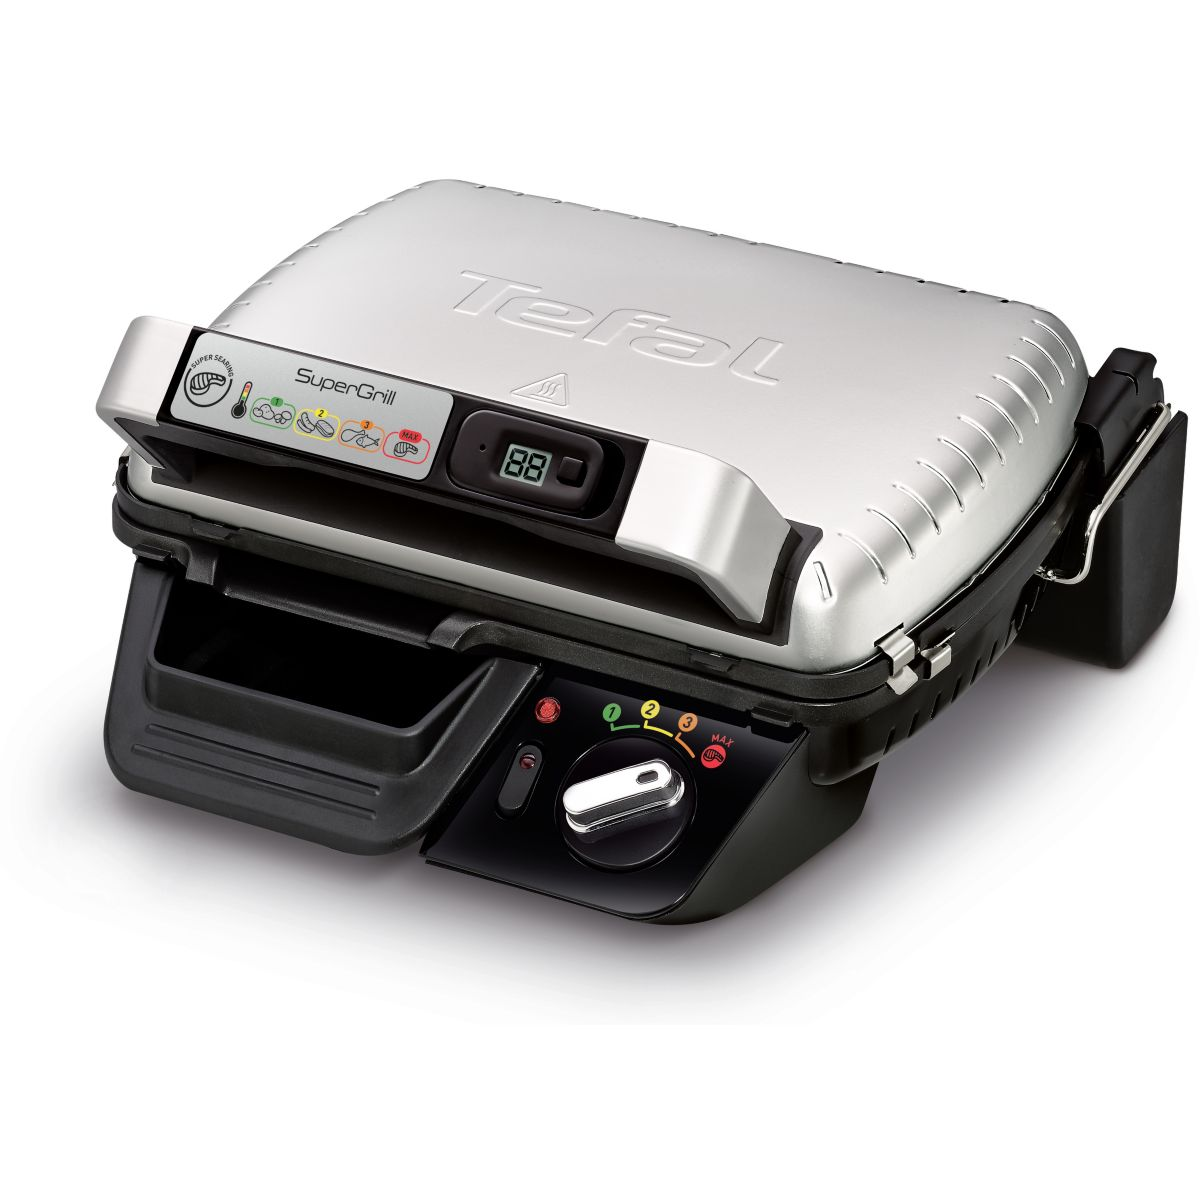 Grille-viande TEFAL SUPERGRILL TIMER GC451B12